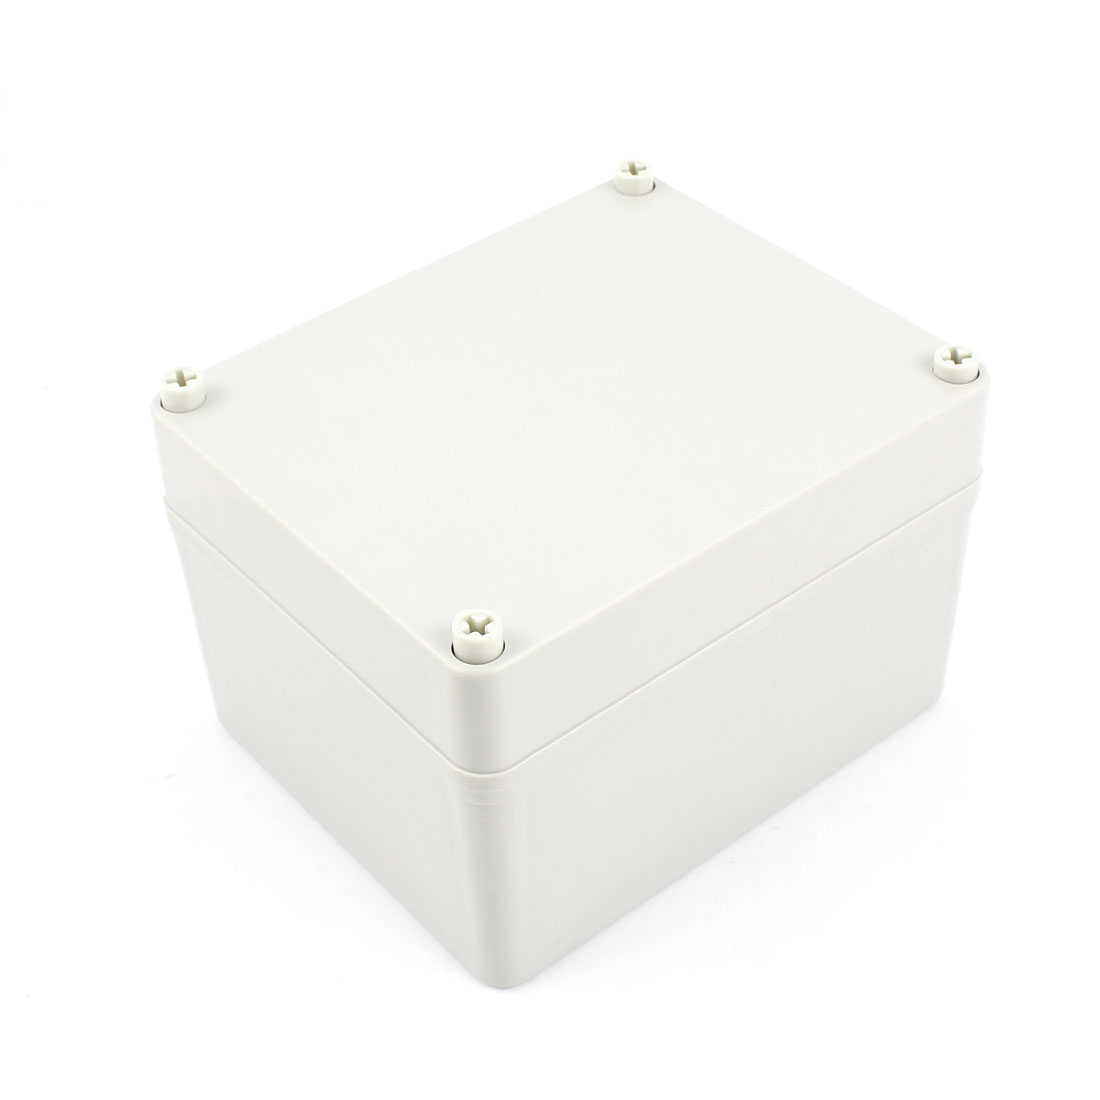 170mm x 170mm x 110mm Waterproof Plastic DIY Junction Box Power Protection Case